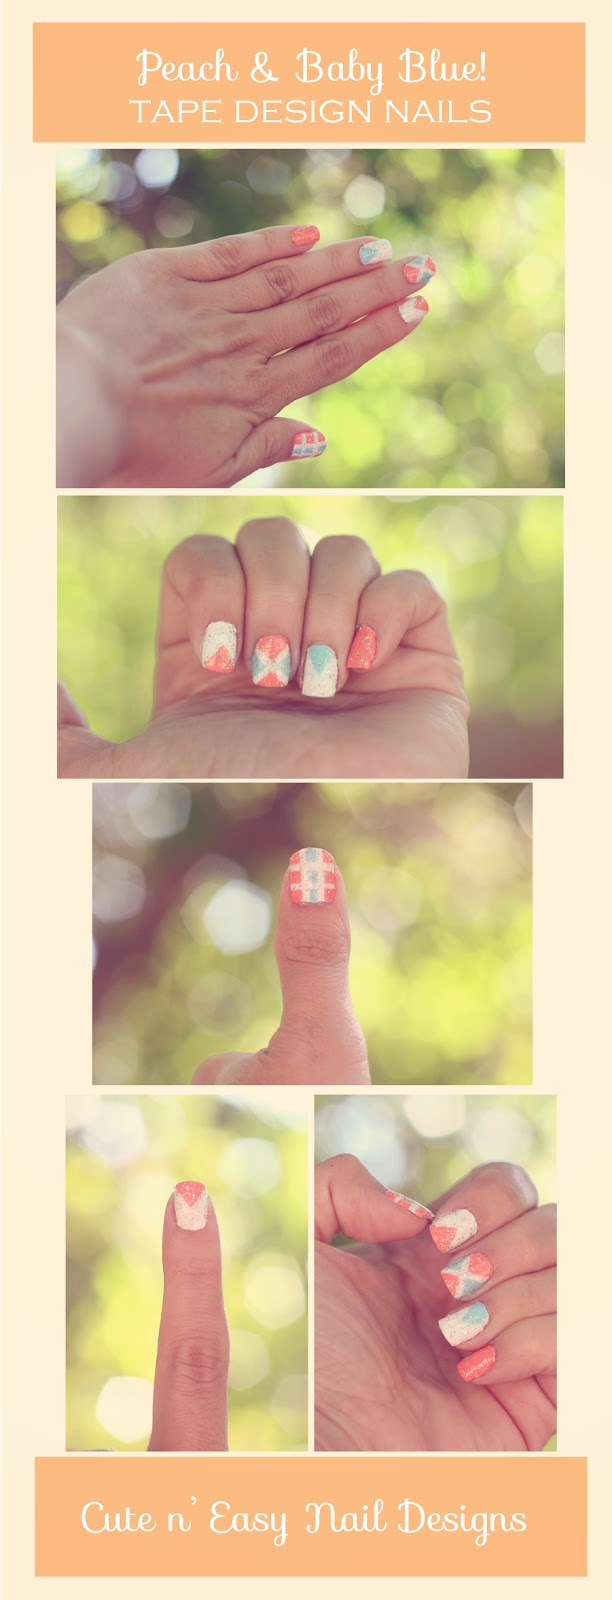 Do It Yourself Design Ideas: Jill And The Little Crown: Cute Nail Designs Using Painter